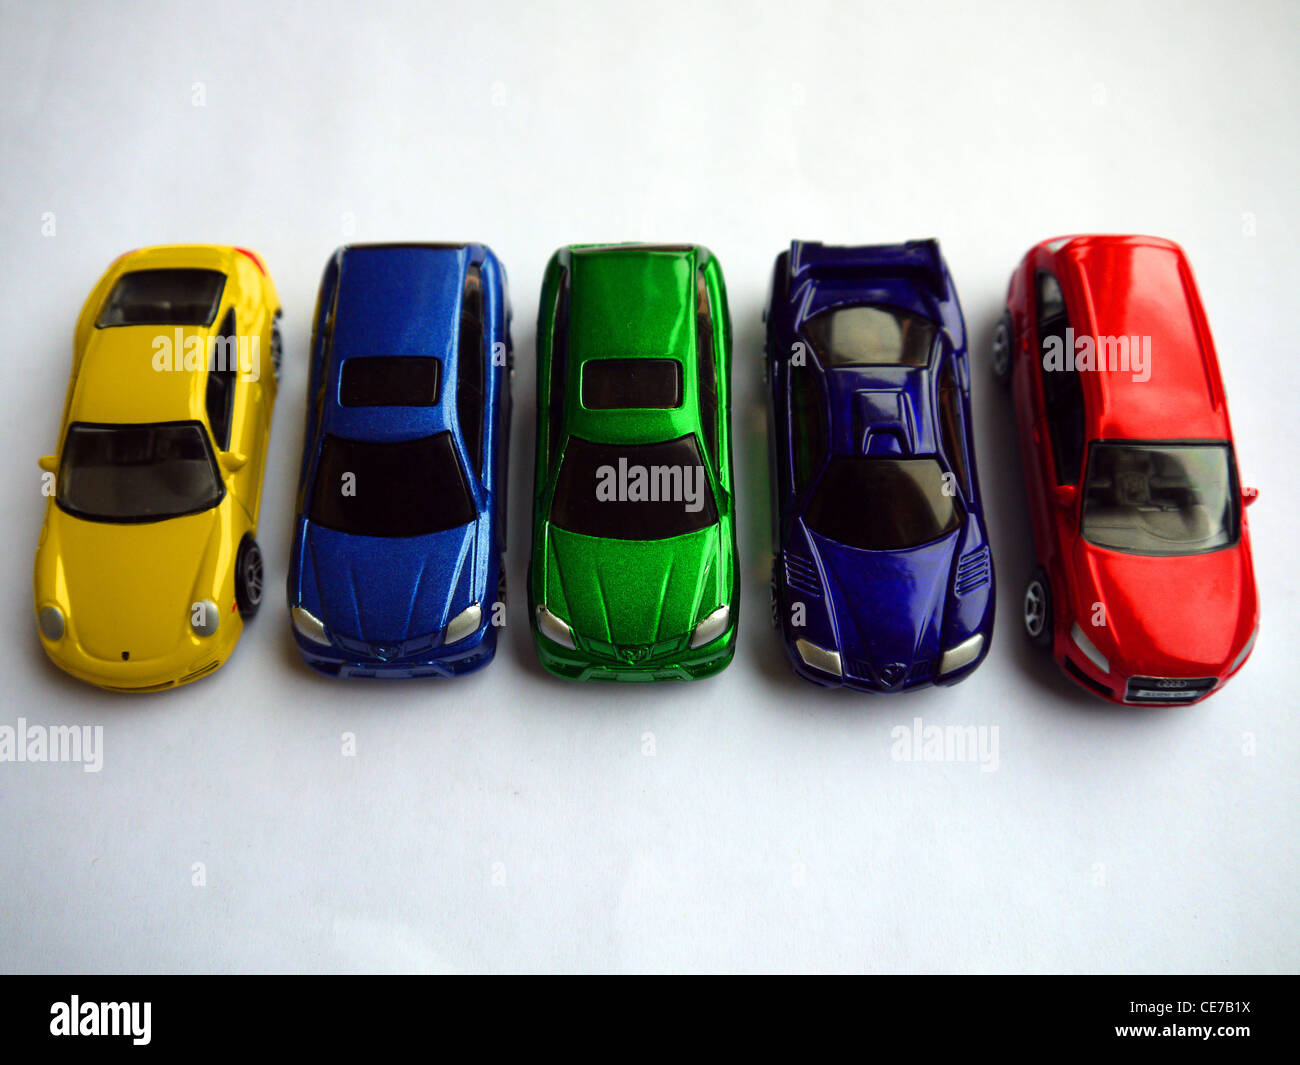 5 Toy Cars In A Row Yellow Blue Green Purple And Red Stock Photo